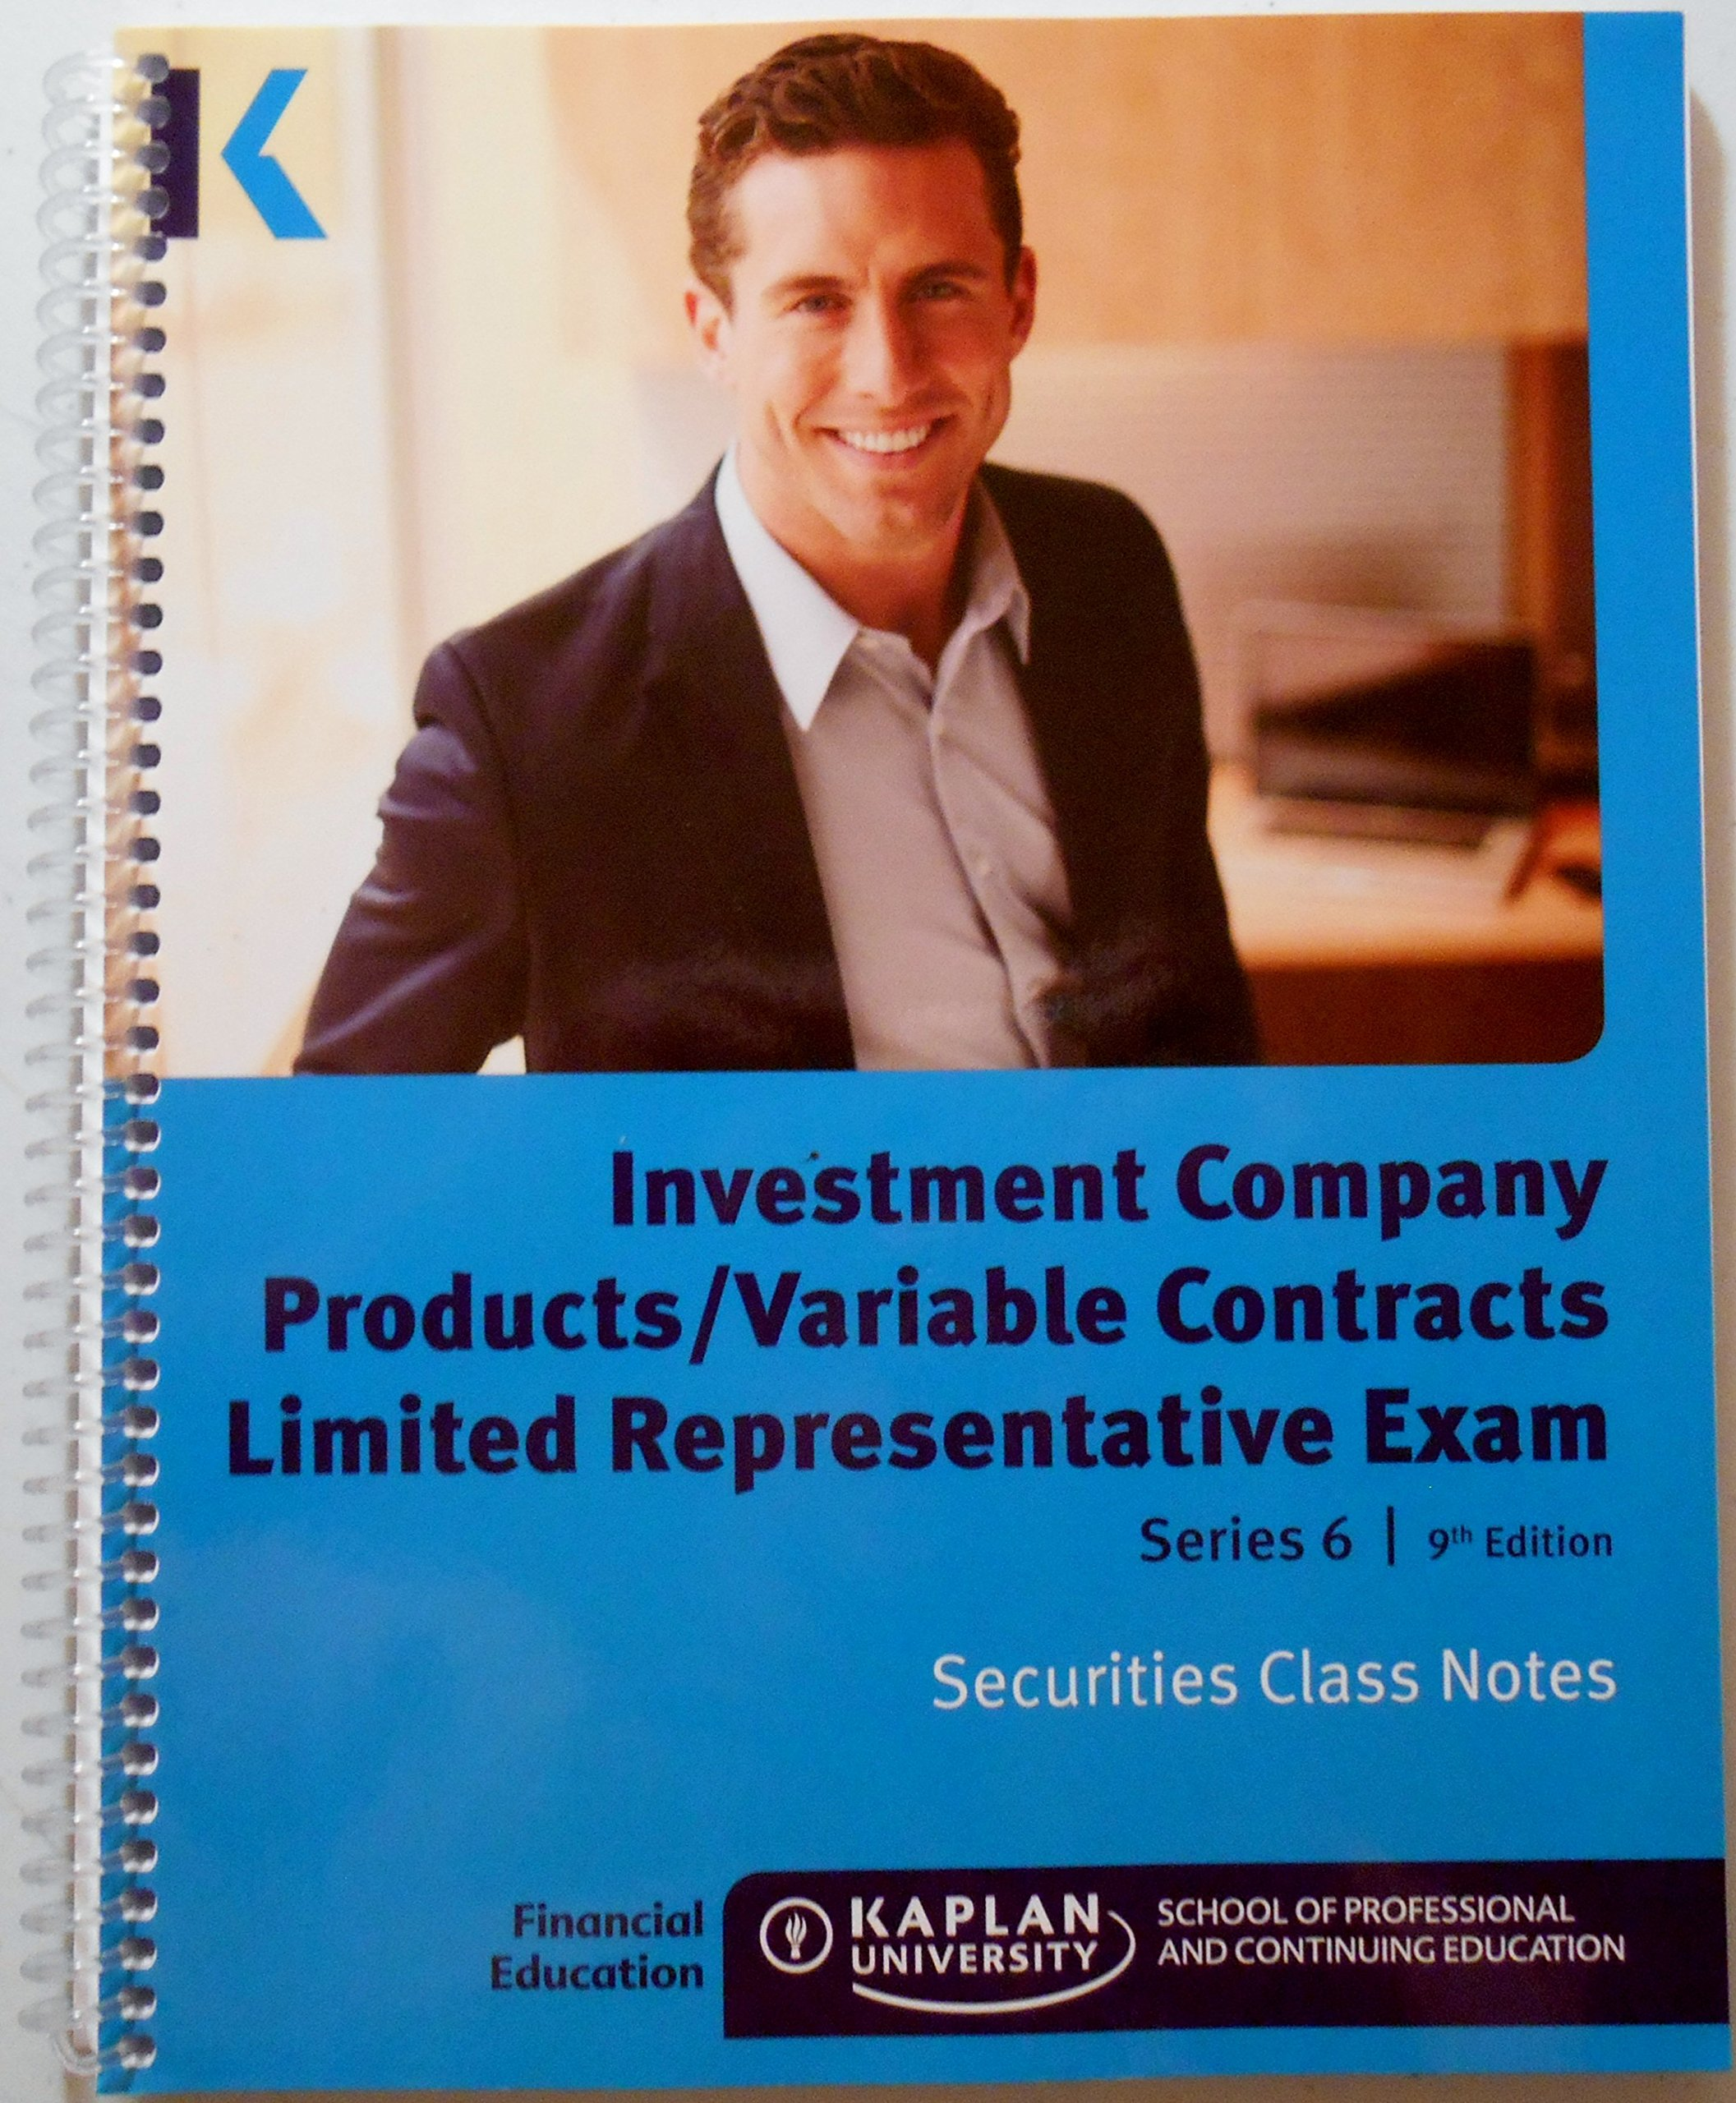 Investment Company Products/Variable Contracts Limited Representative Exam Series 6 9th Edition Securities Class Notes PDF